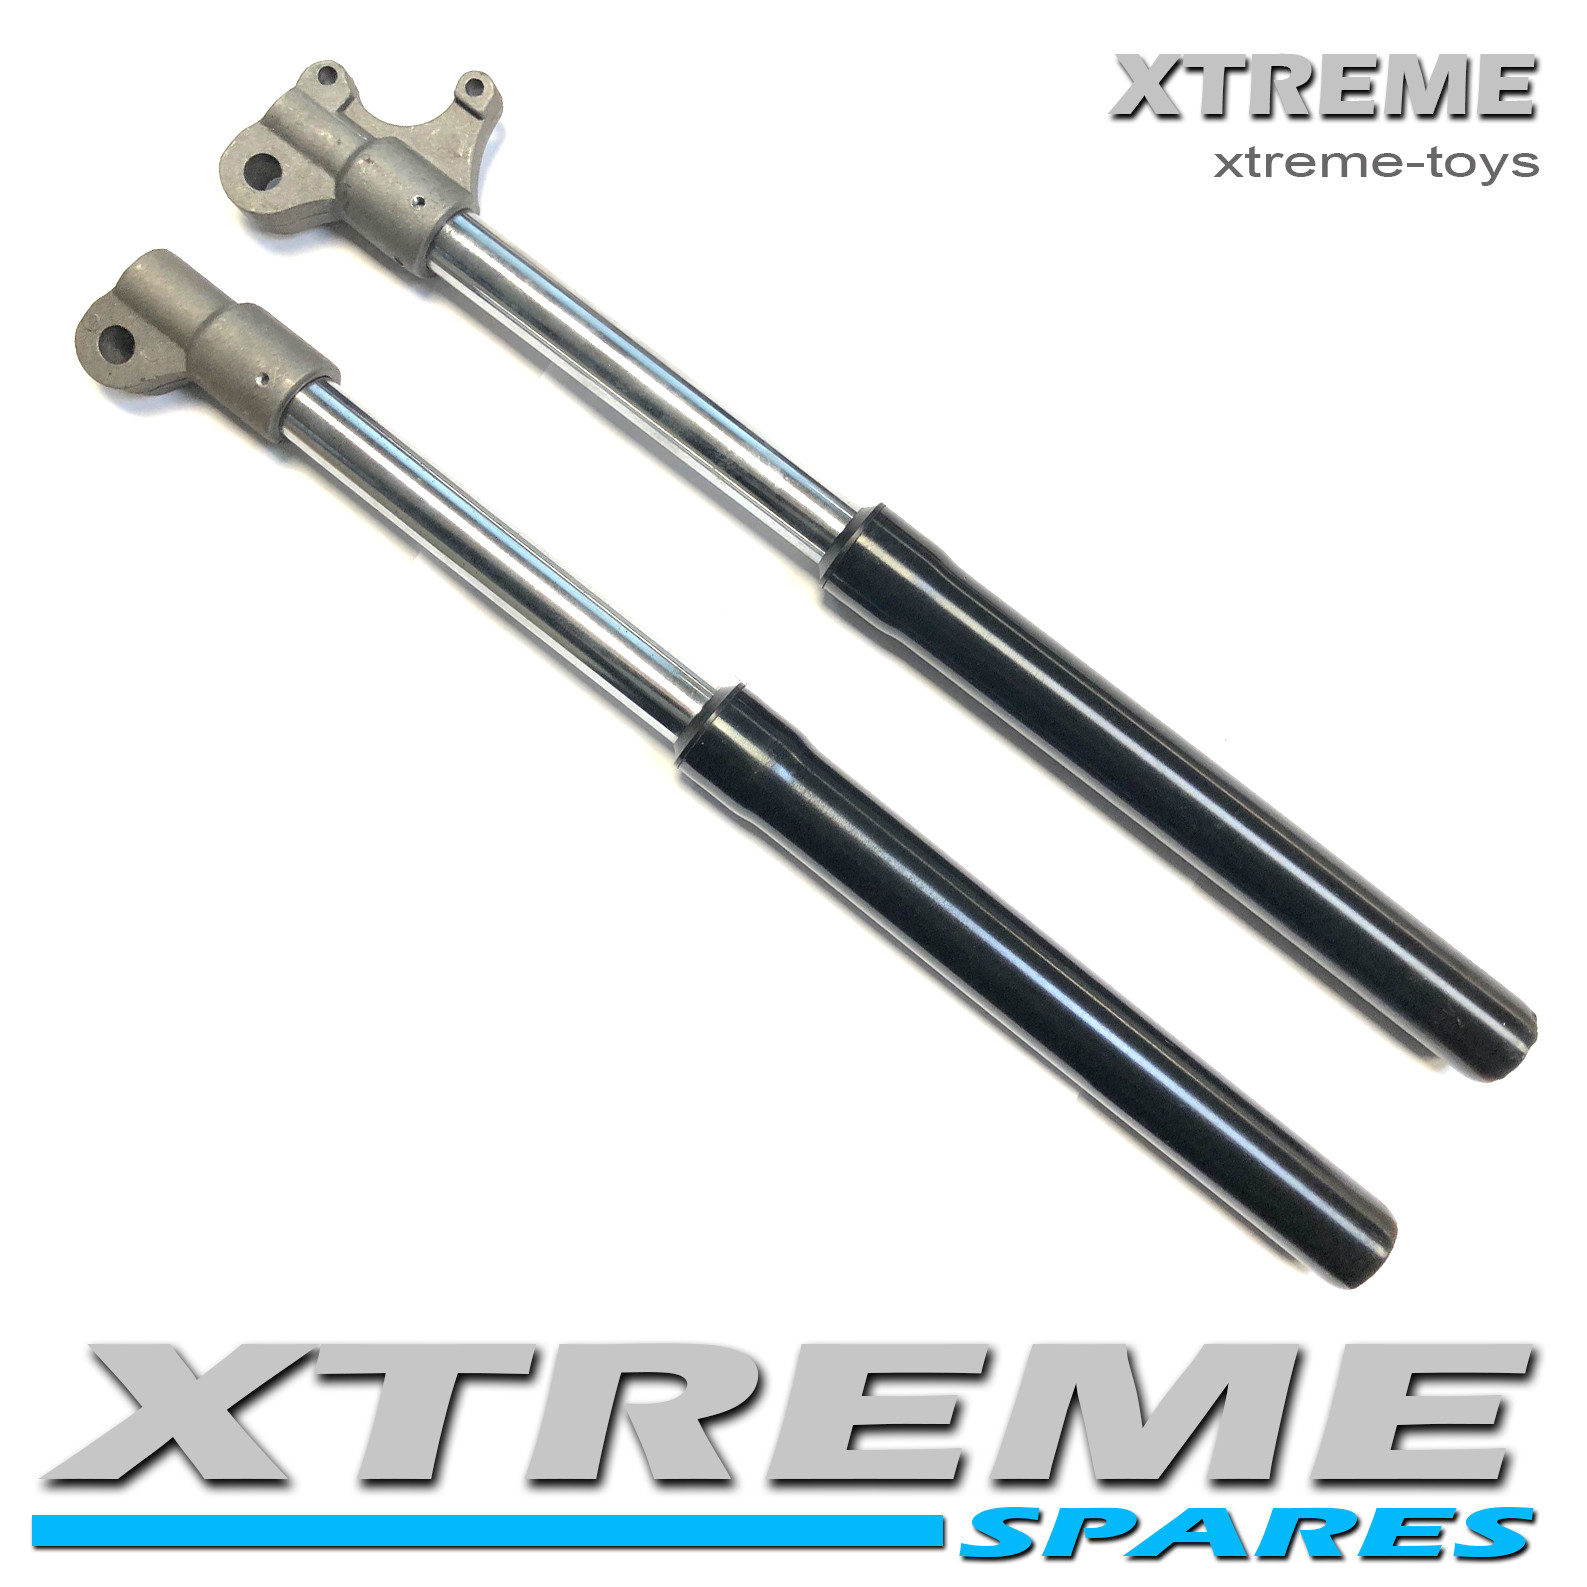 XTM PRO-RIDER COMPLETE REPLACEMENT FRONT FORK SHOCKER SET